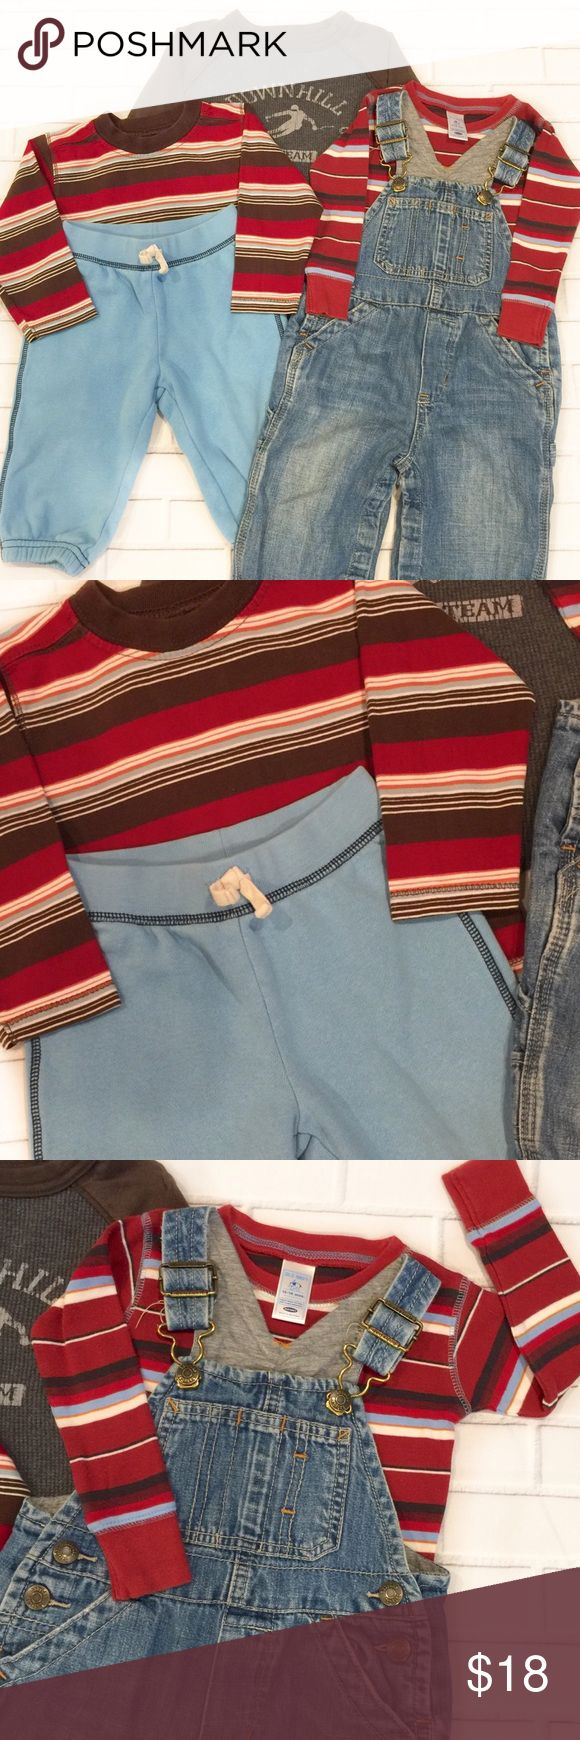 🌟30% Bundles🌟Boys 5pc Old Navy/Gap Bundle ▫️Brand: Gap/Old Navy ▫️Size: 12-18M ▫️Material: Cotton/Polyester  ▫️Flaws: NONE  ▫️Description:  1. Old Navy Red Brown Multicolored Striped Crew Neck T-shirt 2. Old Navy Down Hill Skiing Thermal Raglan T-shirt 3. Old Navy Maroon Multicolored Striped Crew Neck T-shirt 4. Gap Blue Joggers 5. Gap Lined Overalls  ▪️NO Trade/Hold ▪️Next Day Shipping ▪️Smoke Free/Kitty Friendly Home  ♦️Please ASK questions & READ descriptions before purchasing♦️ Gap/Old…